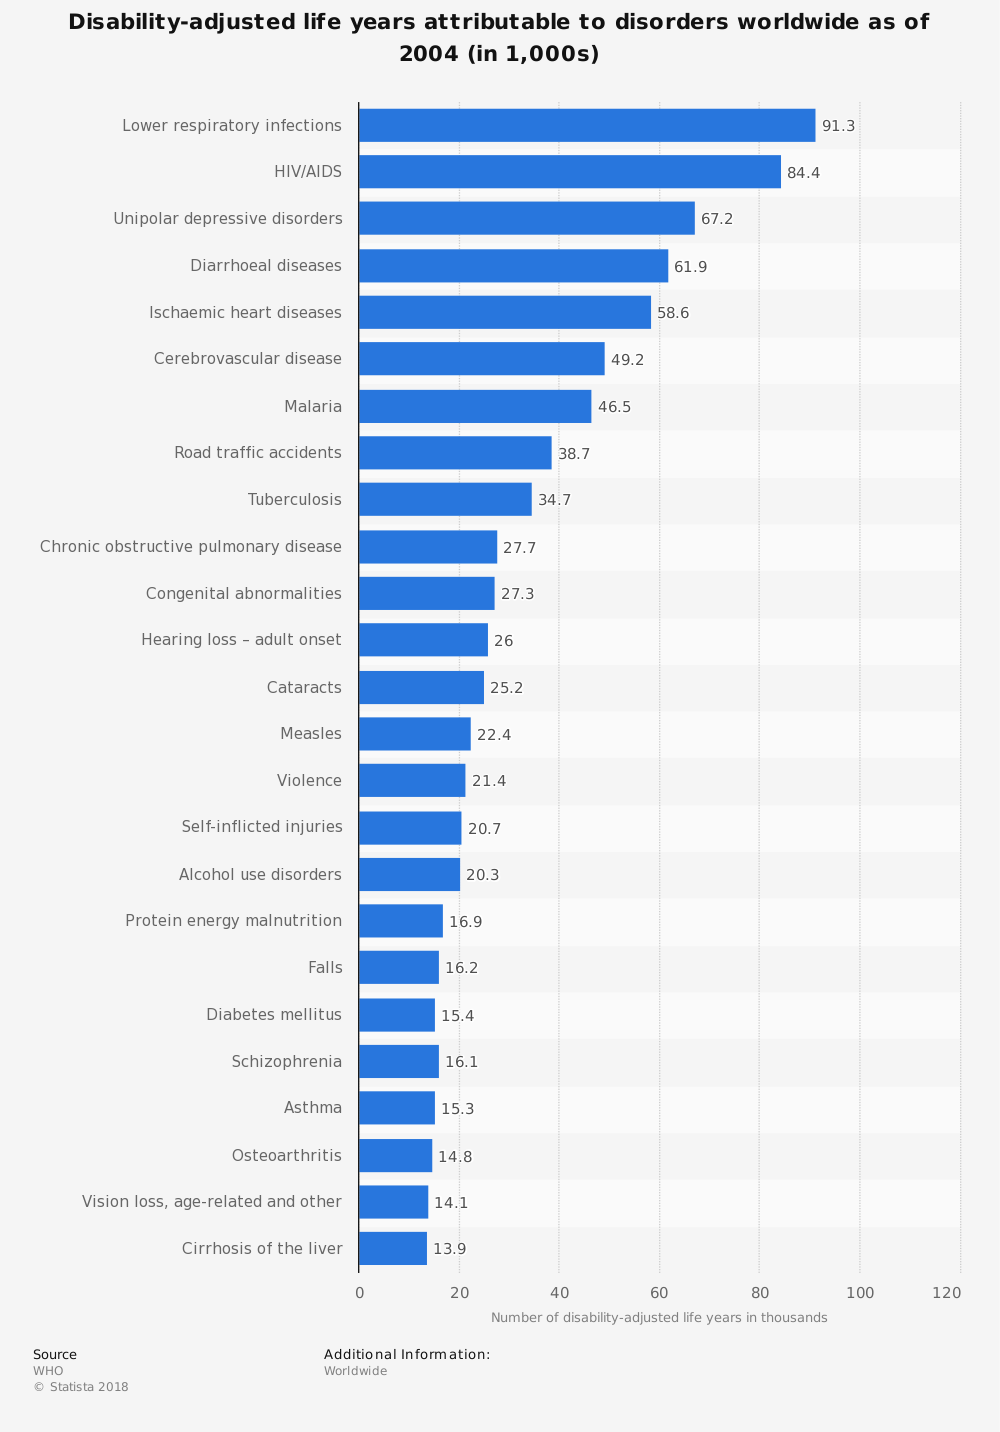 Statistic: Disability-adjusted life years attributable to disorders worldwide as of 2004 (in 1,000s) | Statista